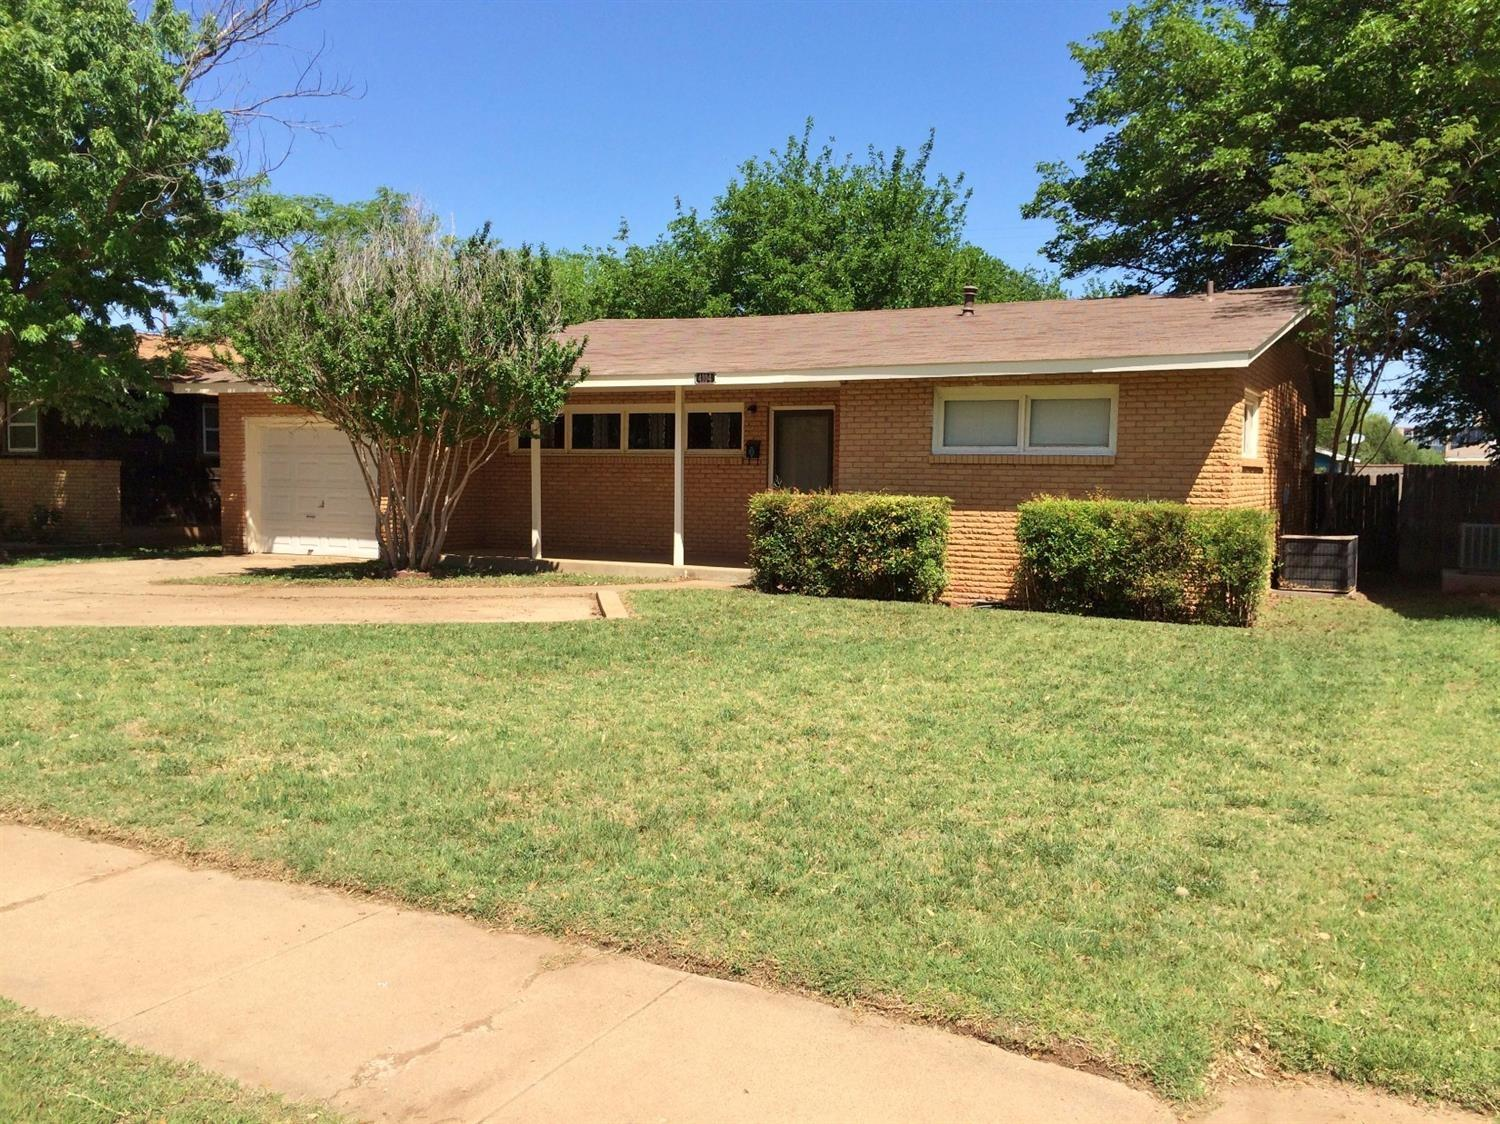 4104 31st Street, Lubbock in Lubbock County, TX 79410 Home for Sale